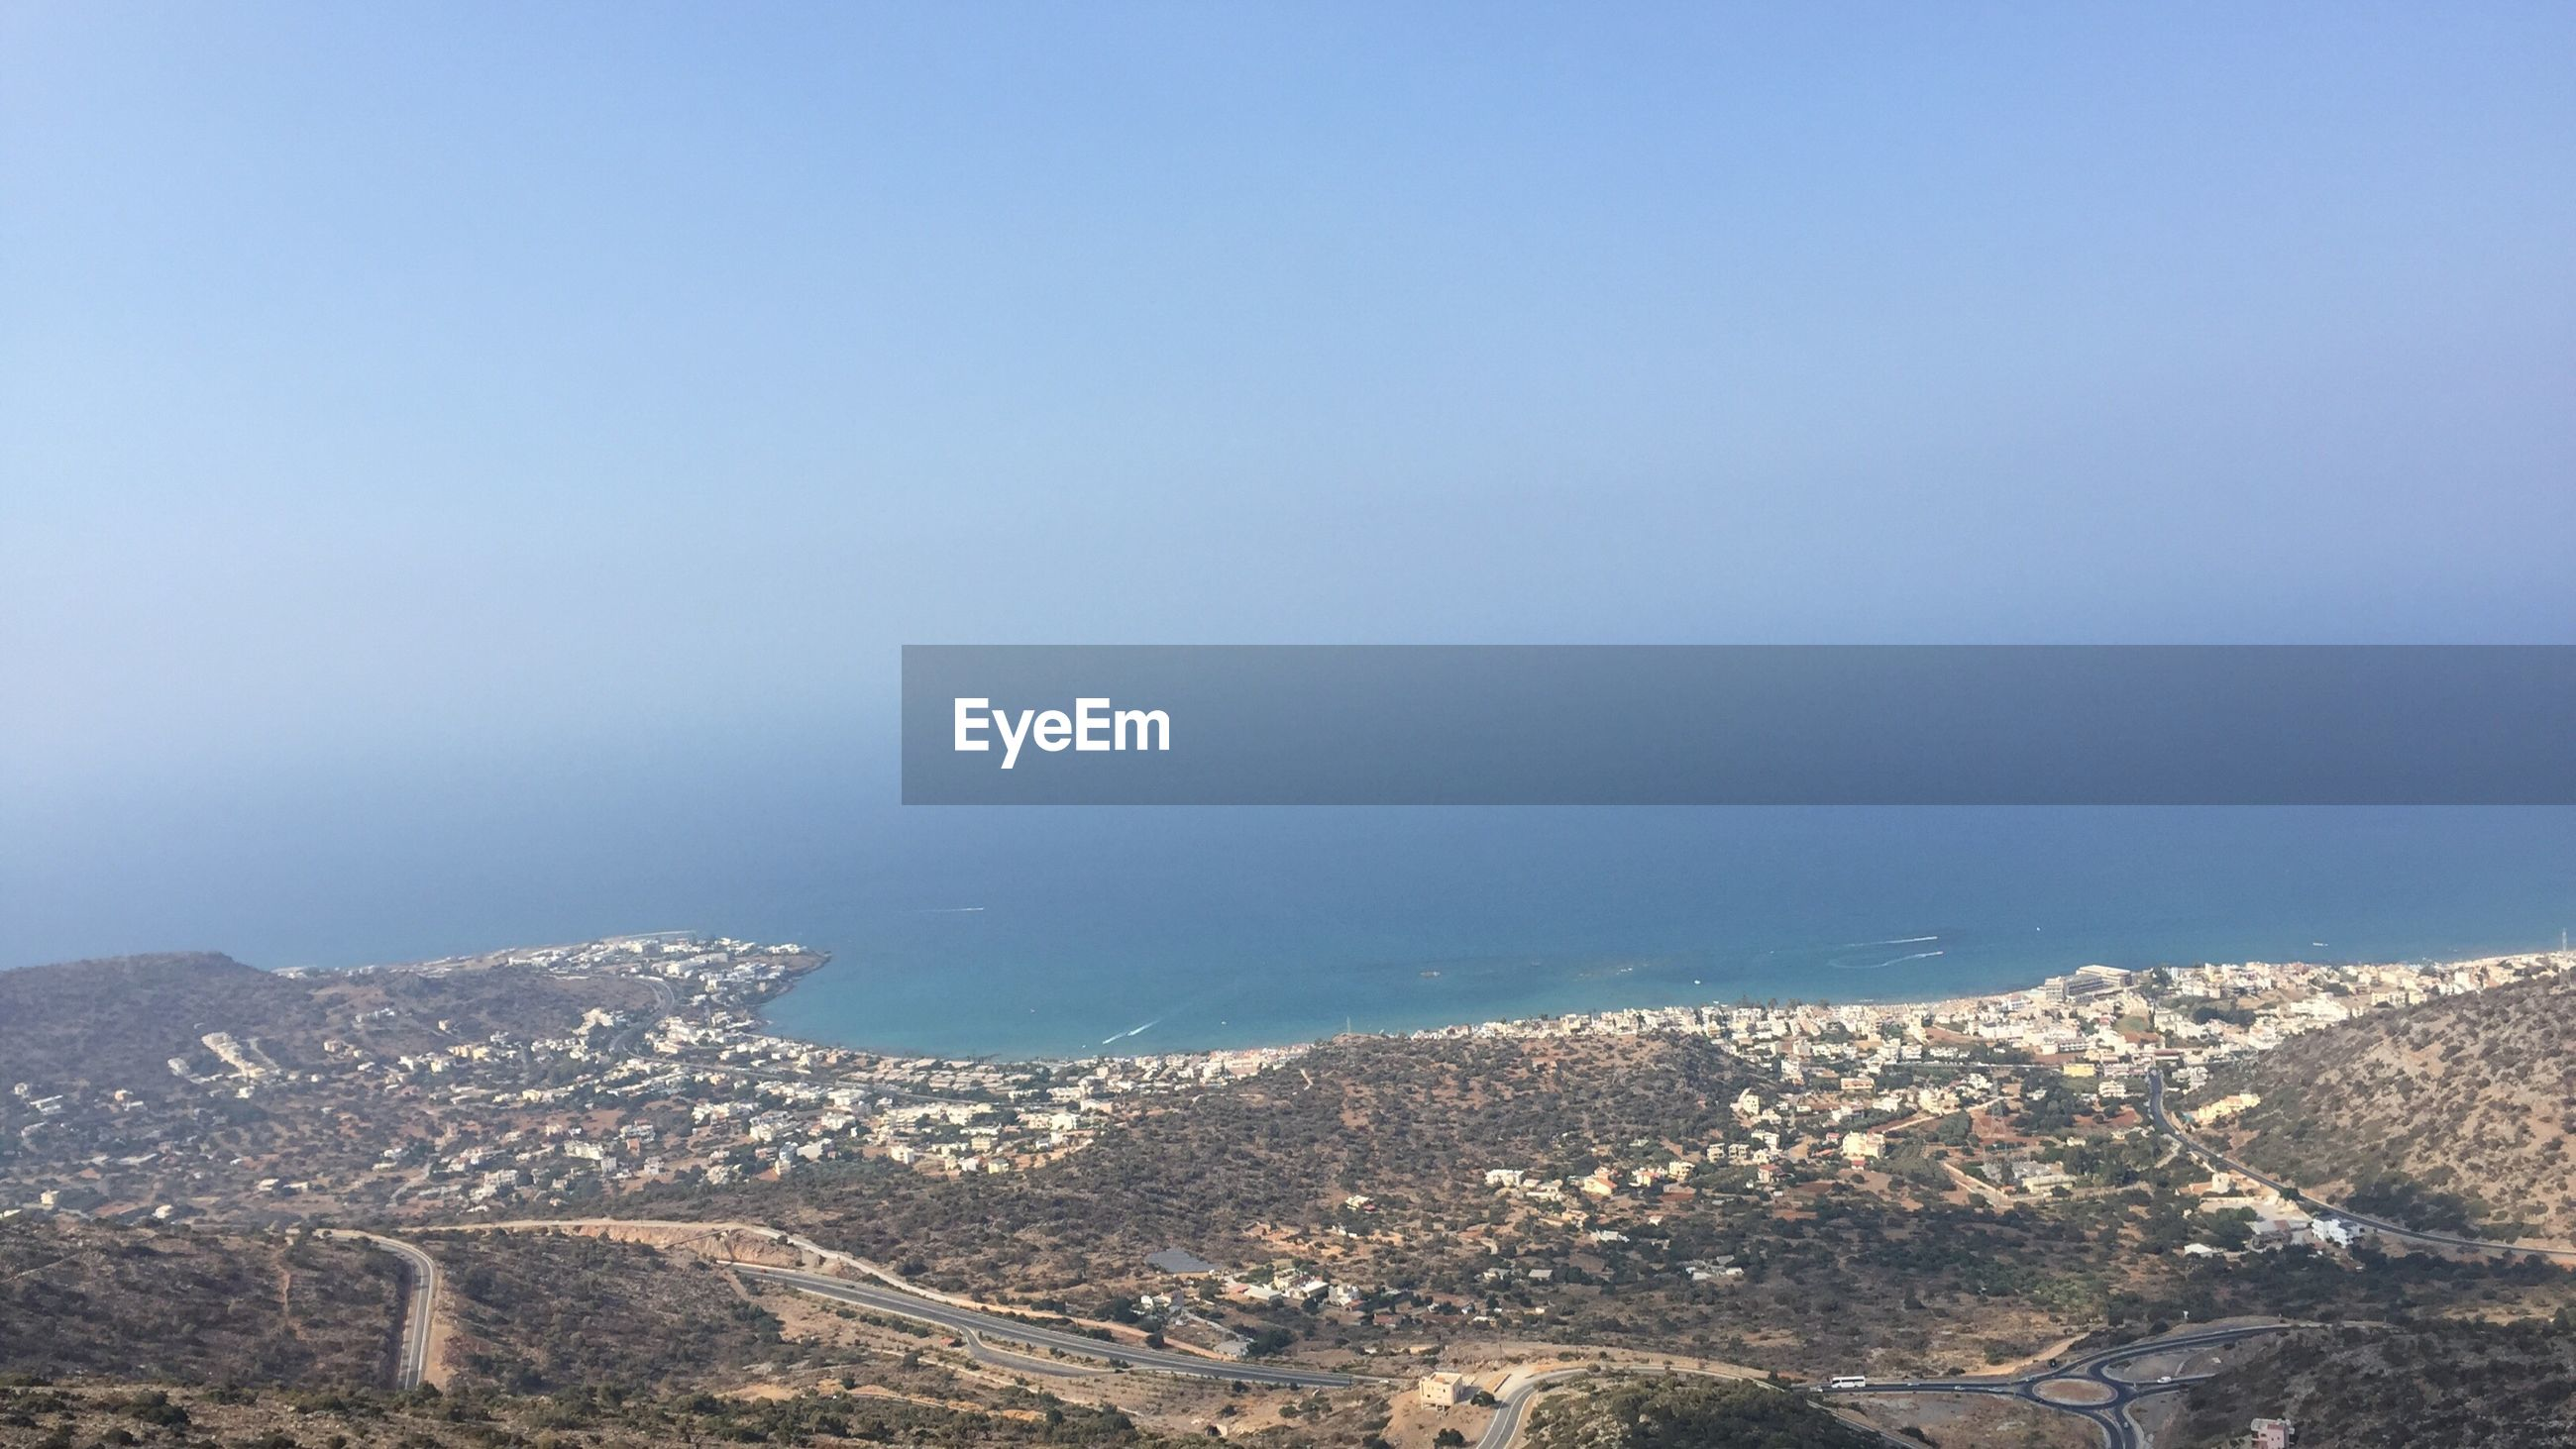 AERIAL VIEW OF SEA WITH CITYSCAPE IN BACKGROUND